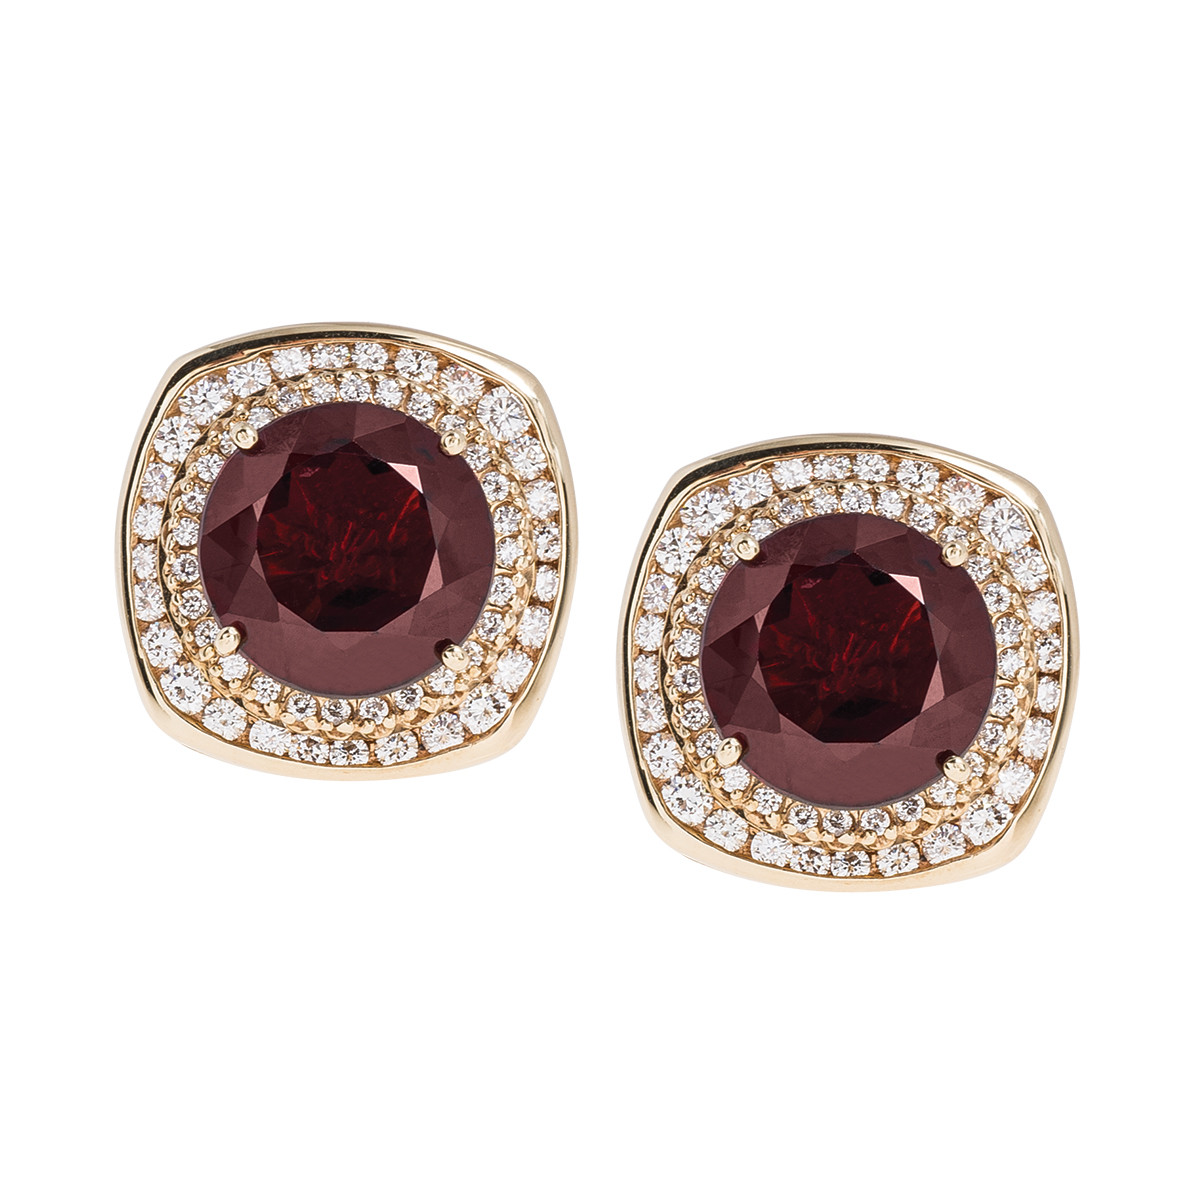 Vintage 20.85 CTW Garnet & Diamond Halo Earrings